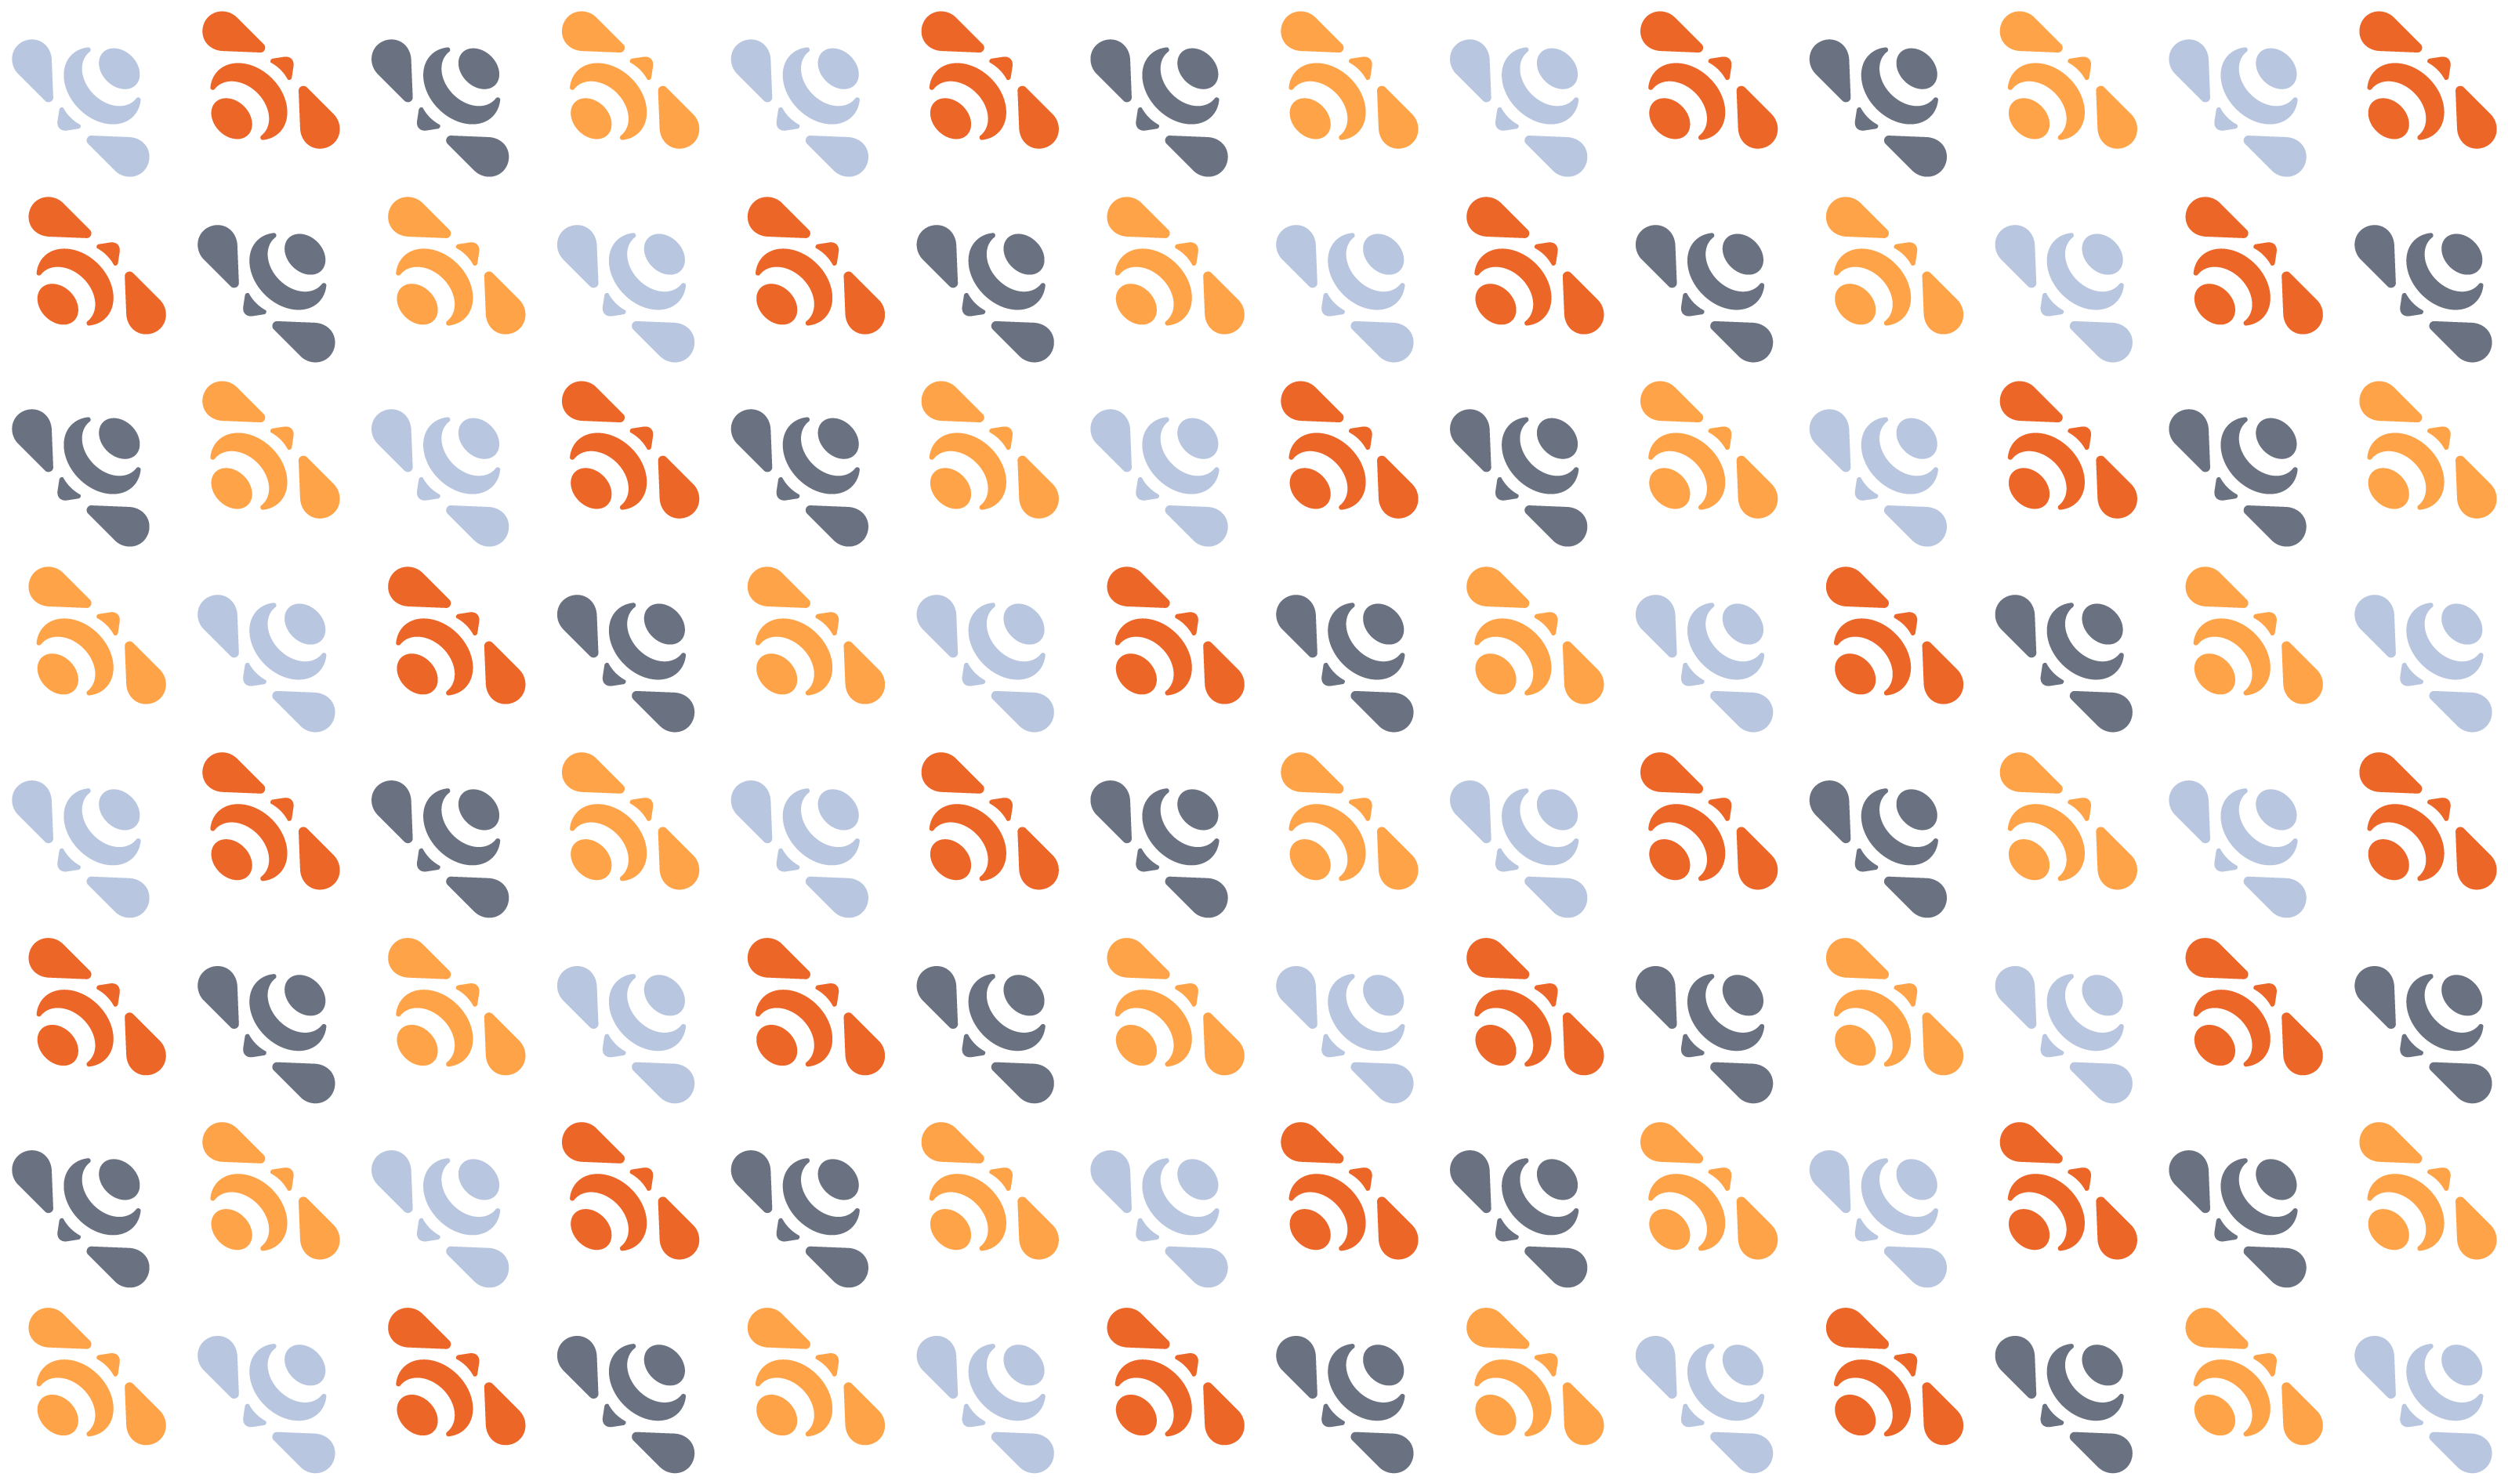 Blender Market bee hive pattern